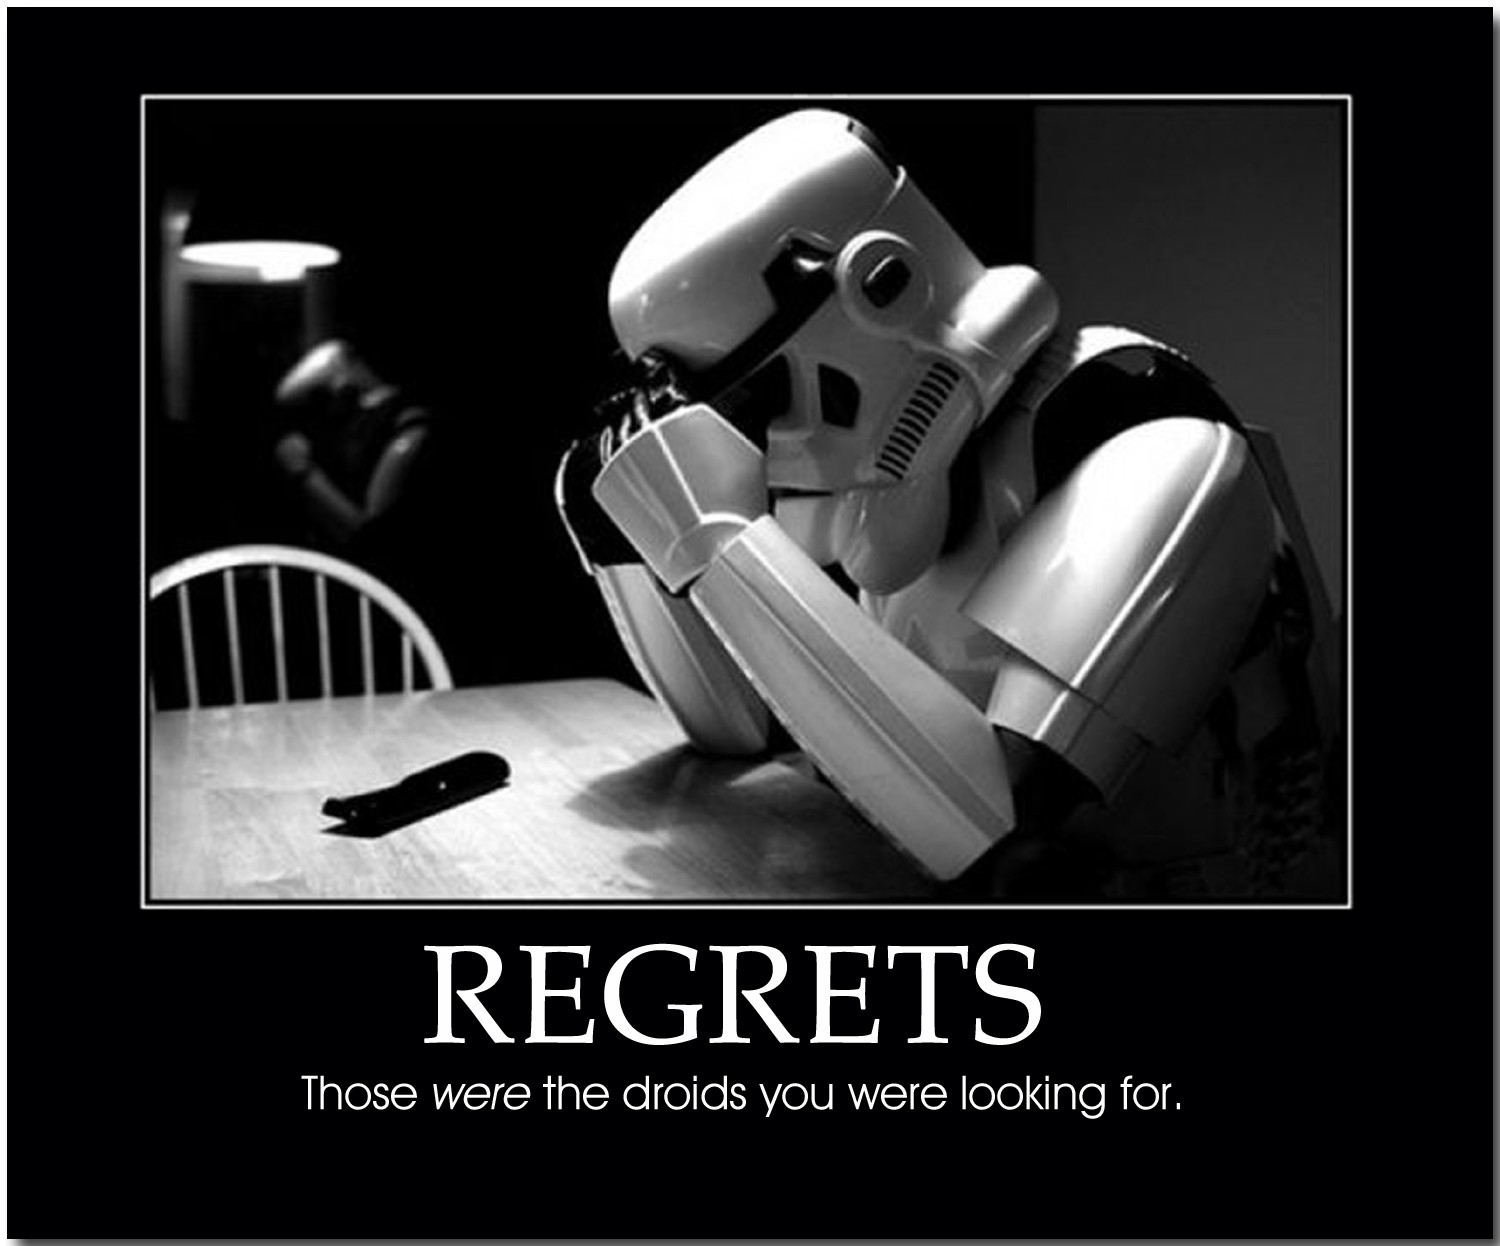 those-were-the-droids-storm-trooper.jpg